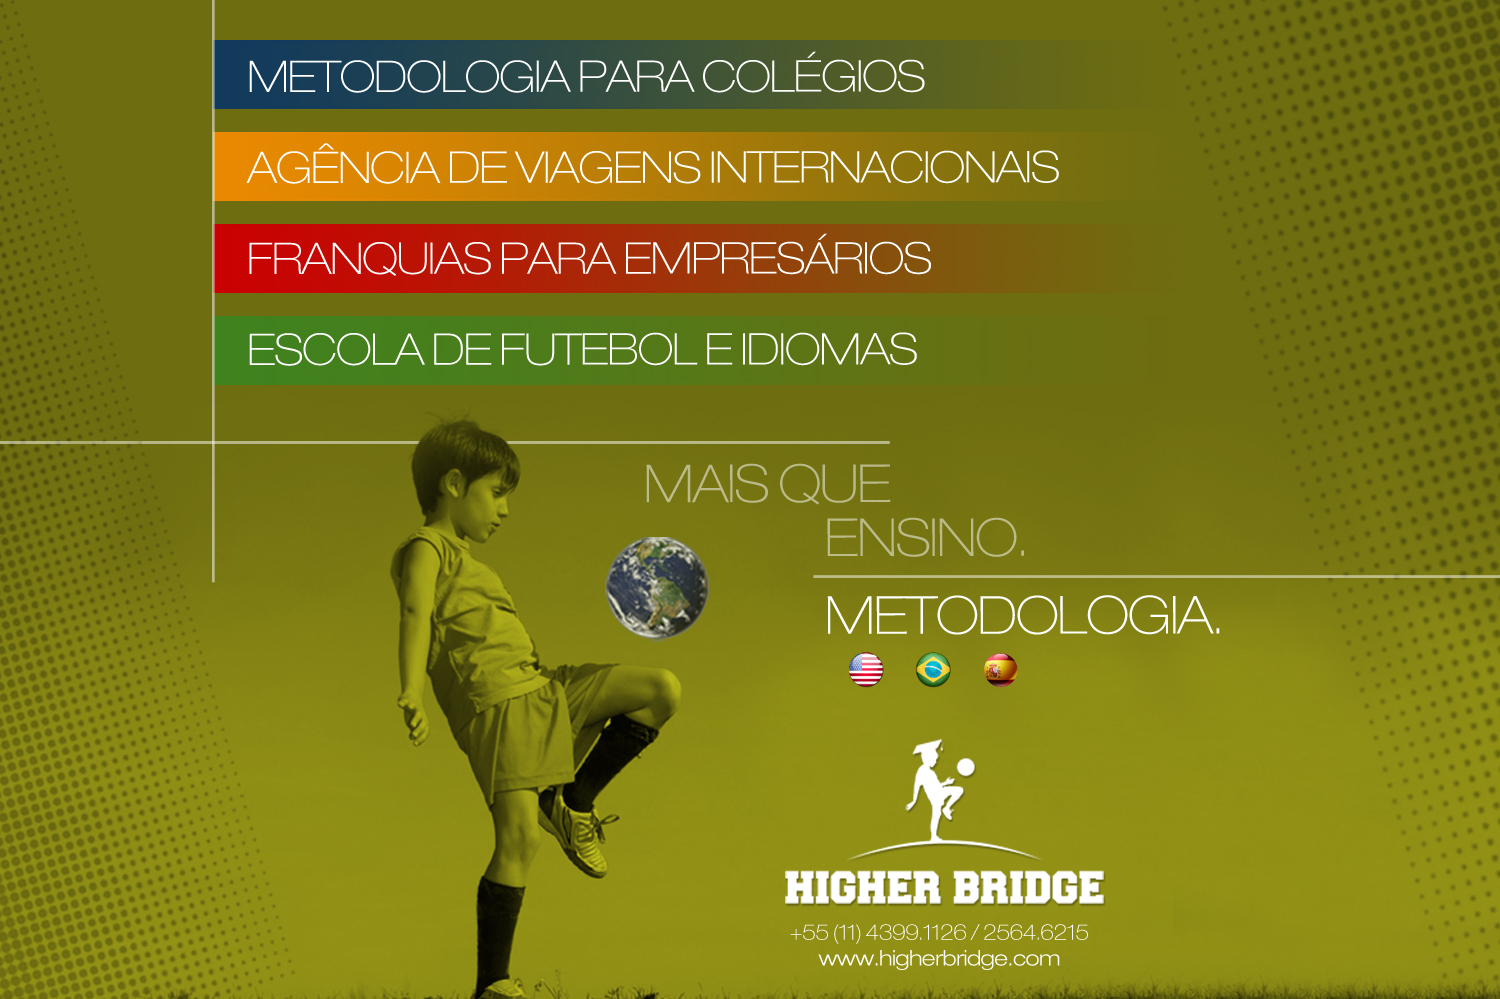 Higher Bridge - Banner Site 2